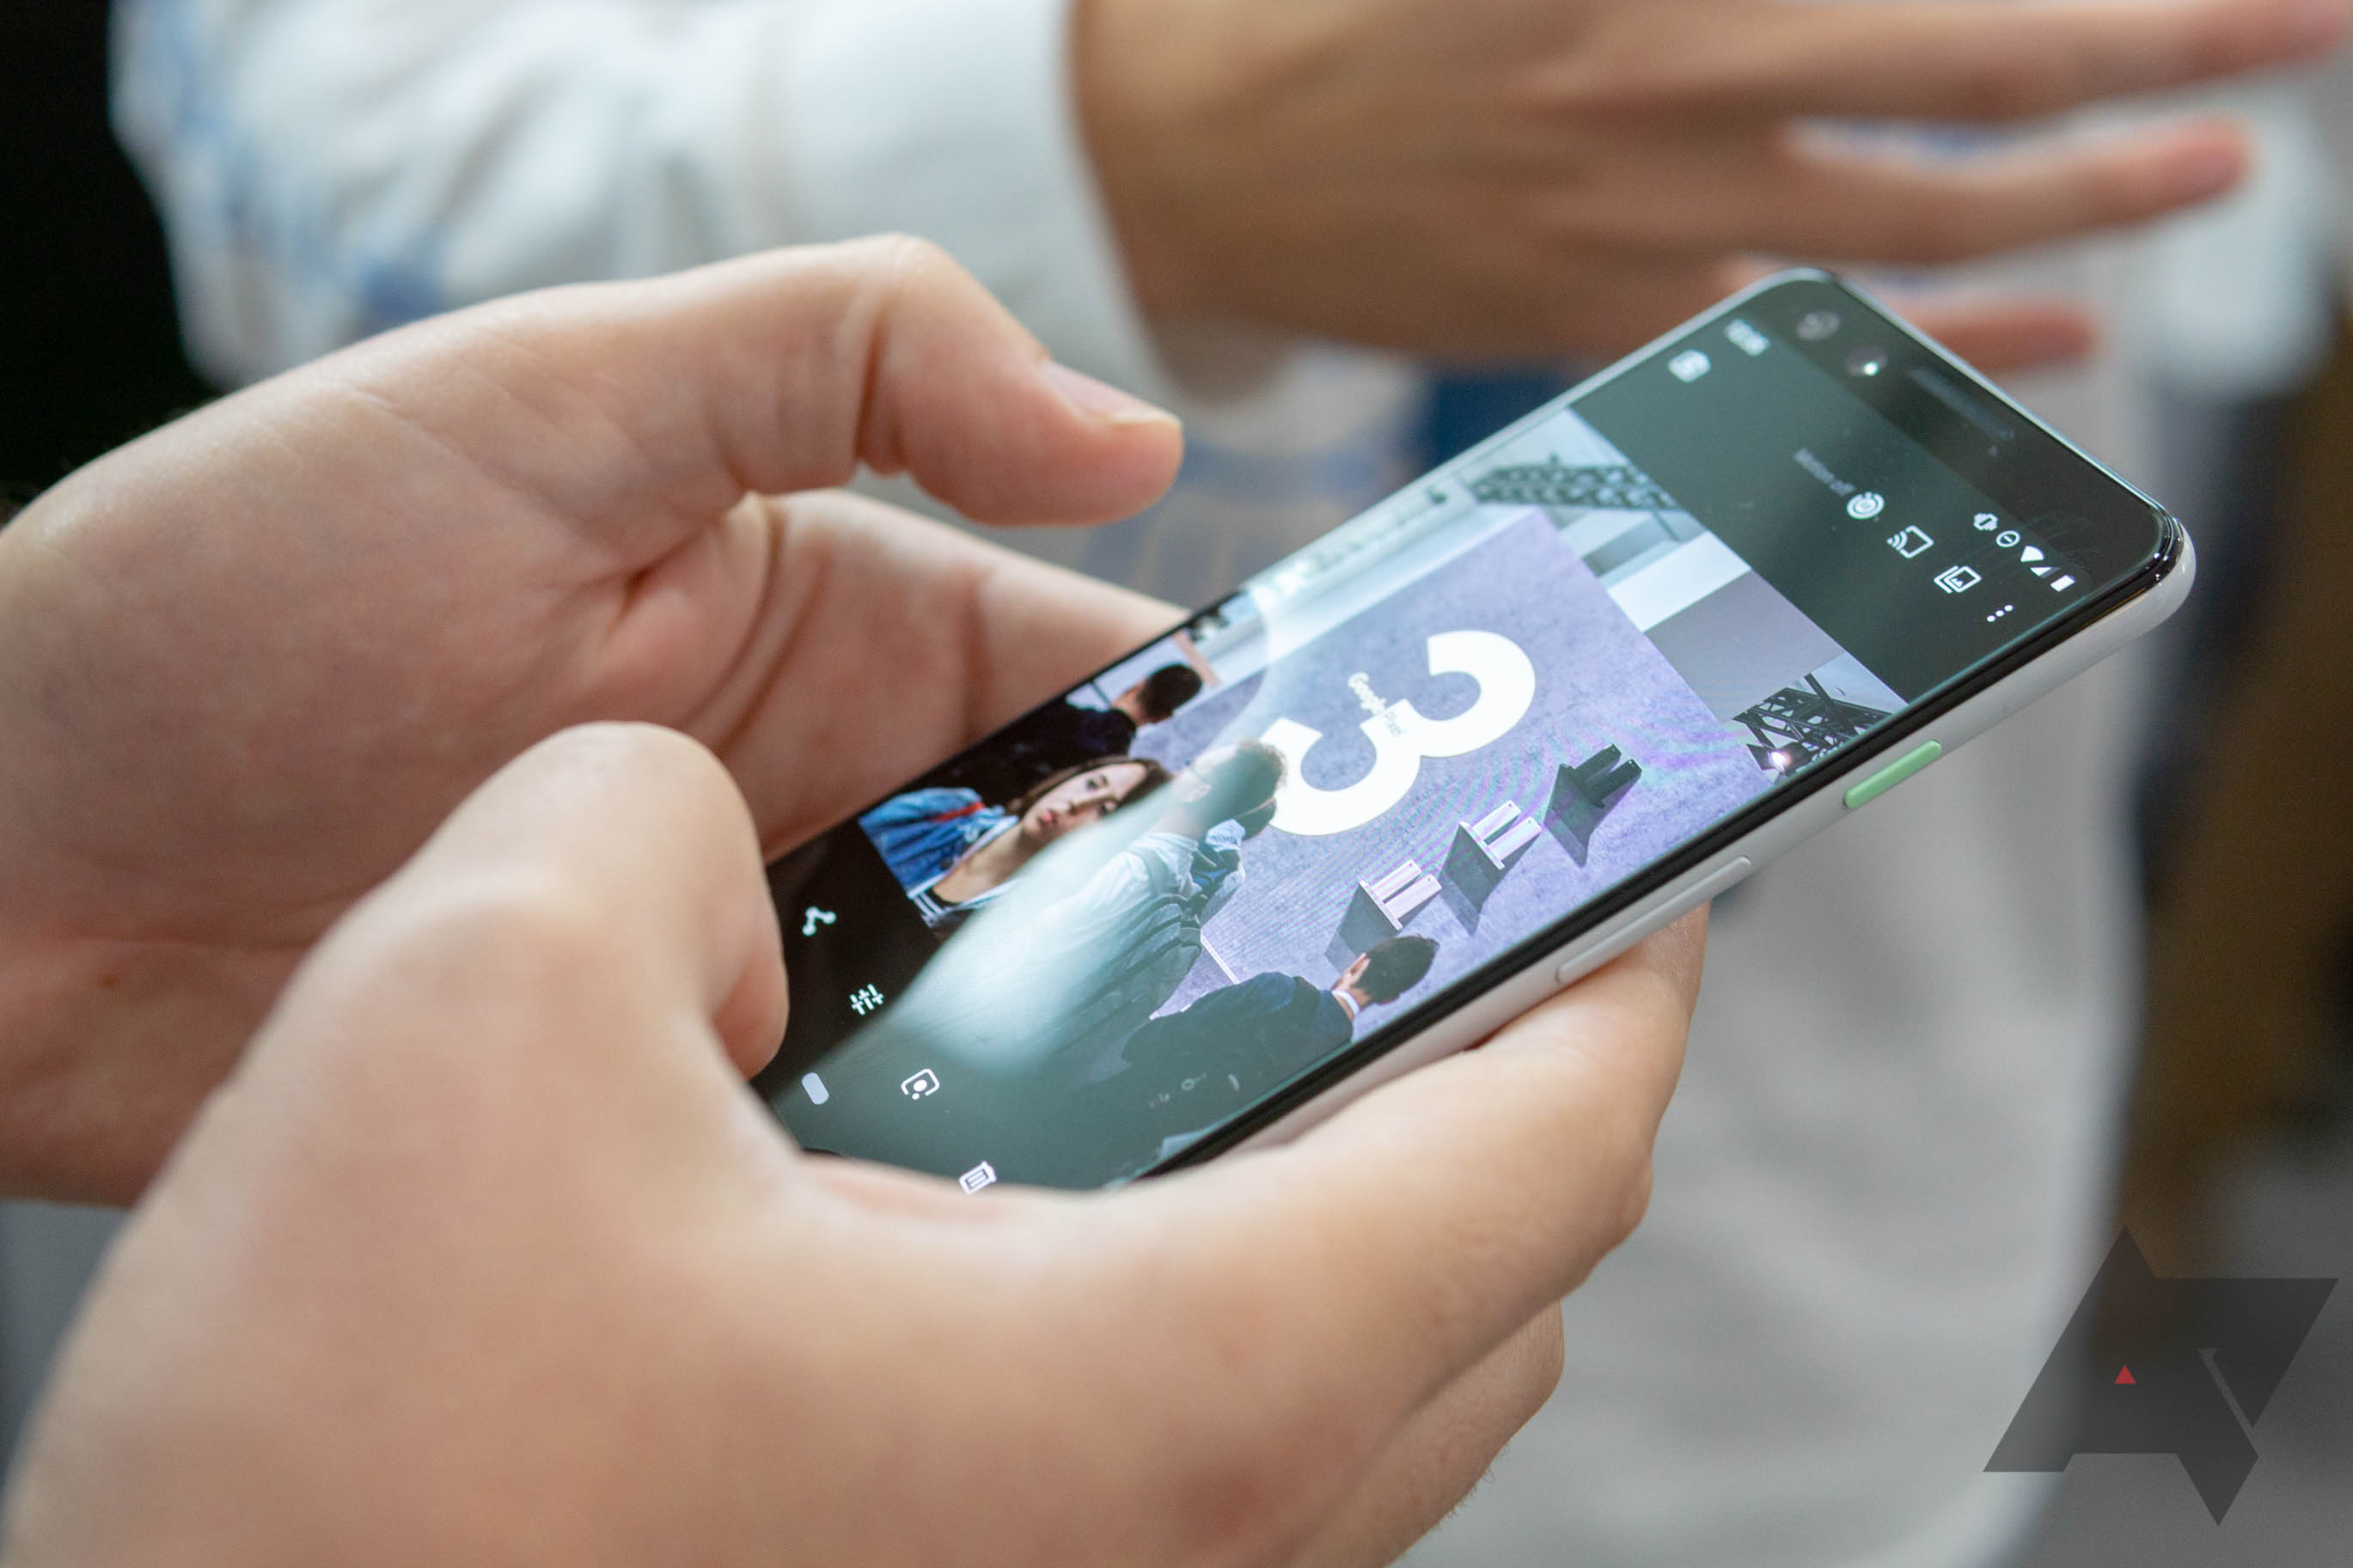 Google Pixel 3 XL iFixit Teardown Reveals Samsung OLED Display